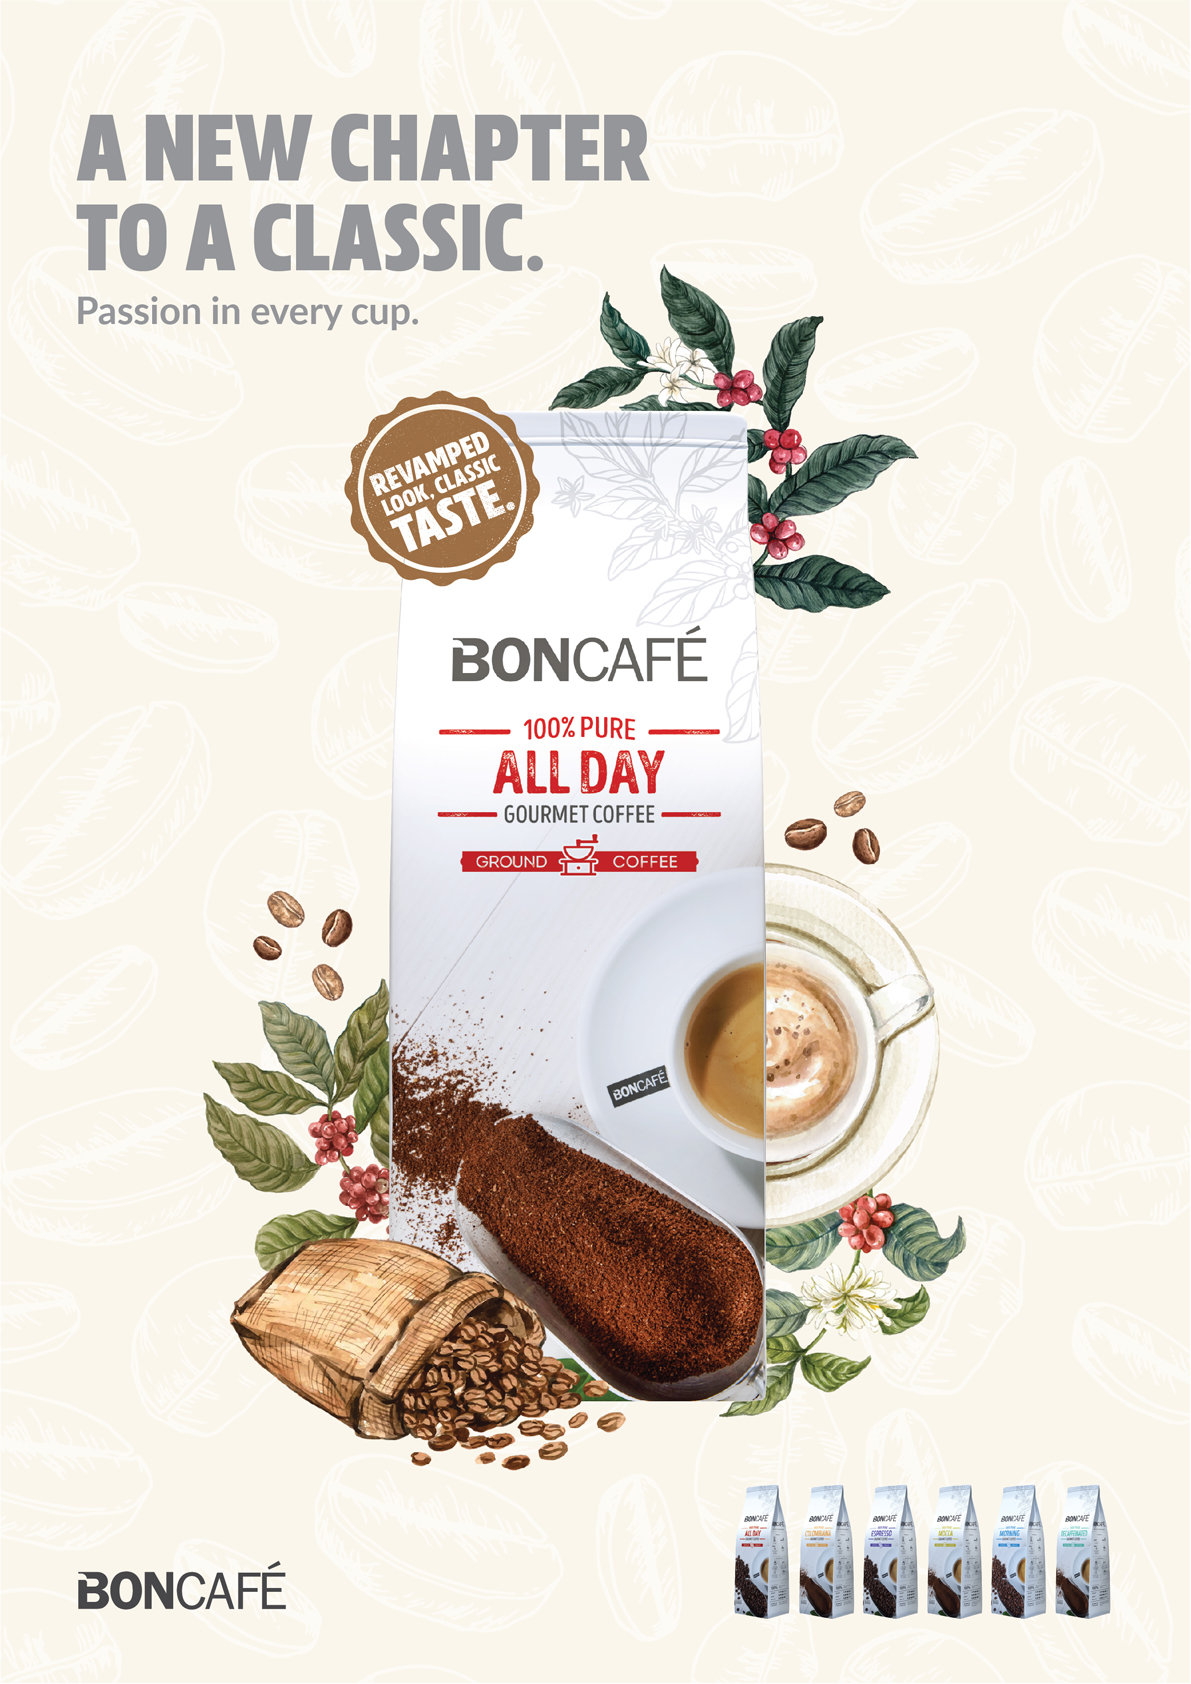 ZOO Group Singapore creates a new look for Boncafe